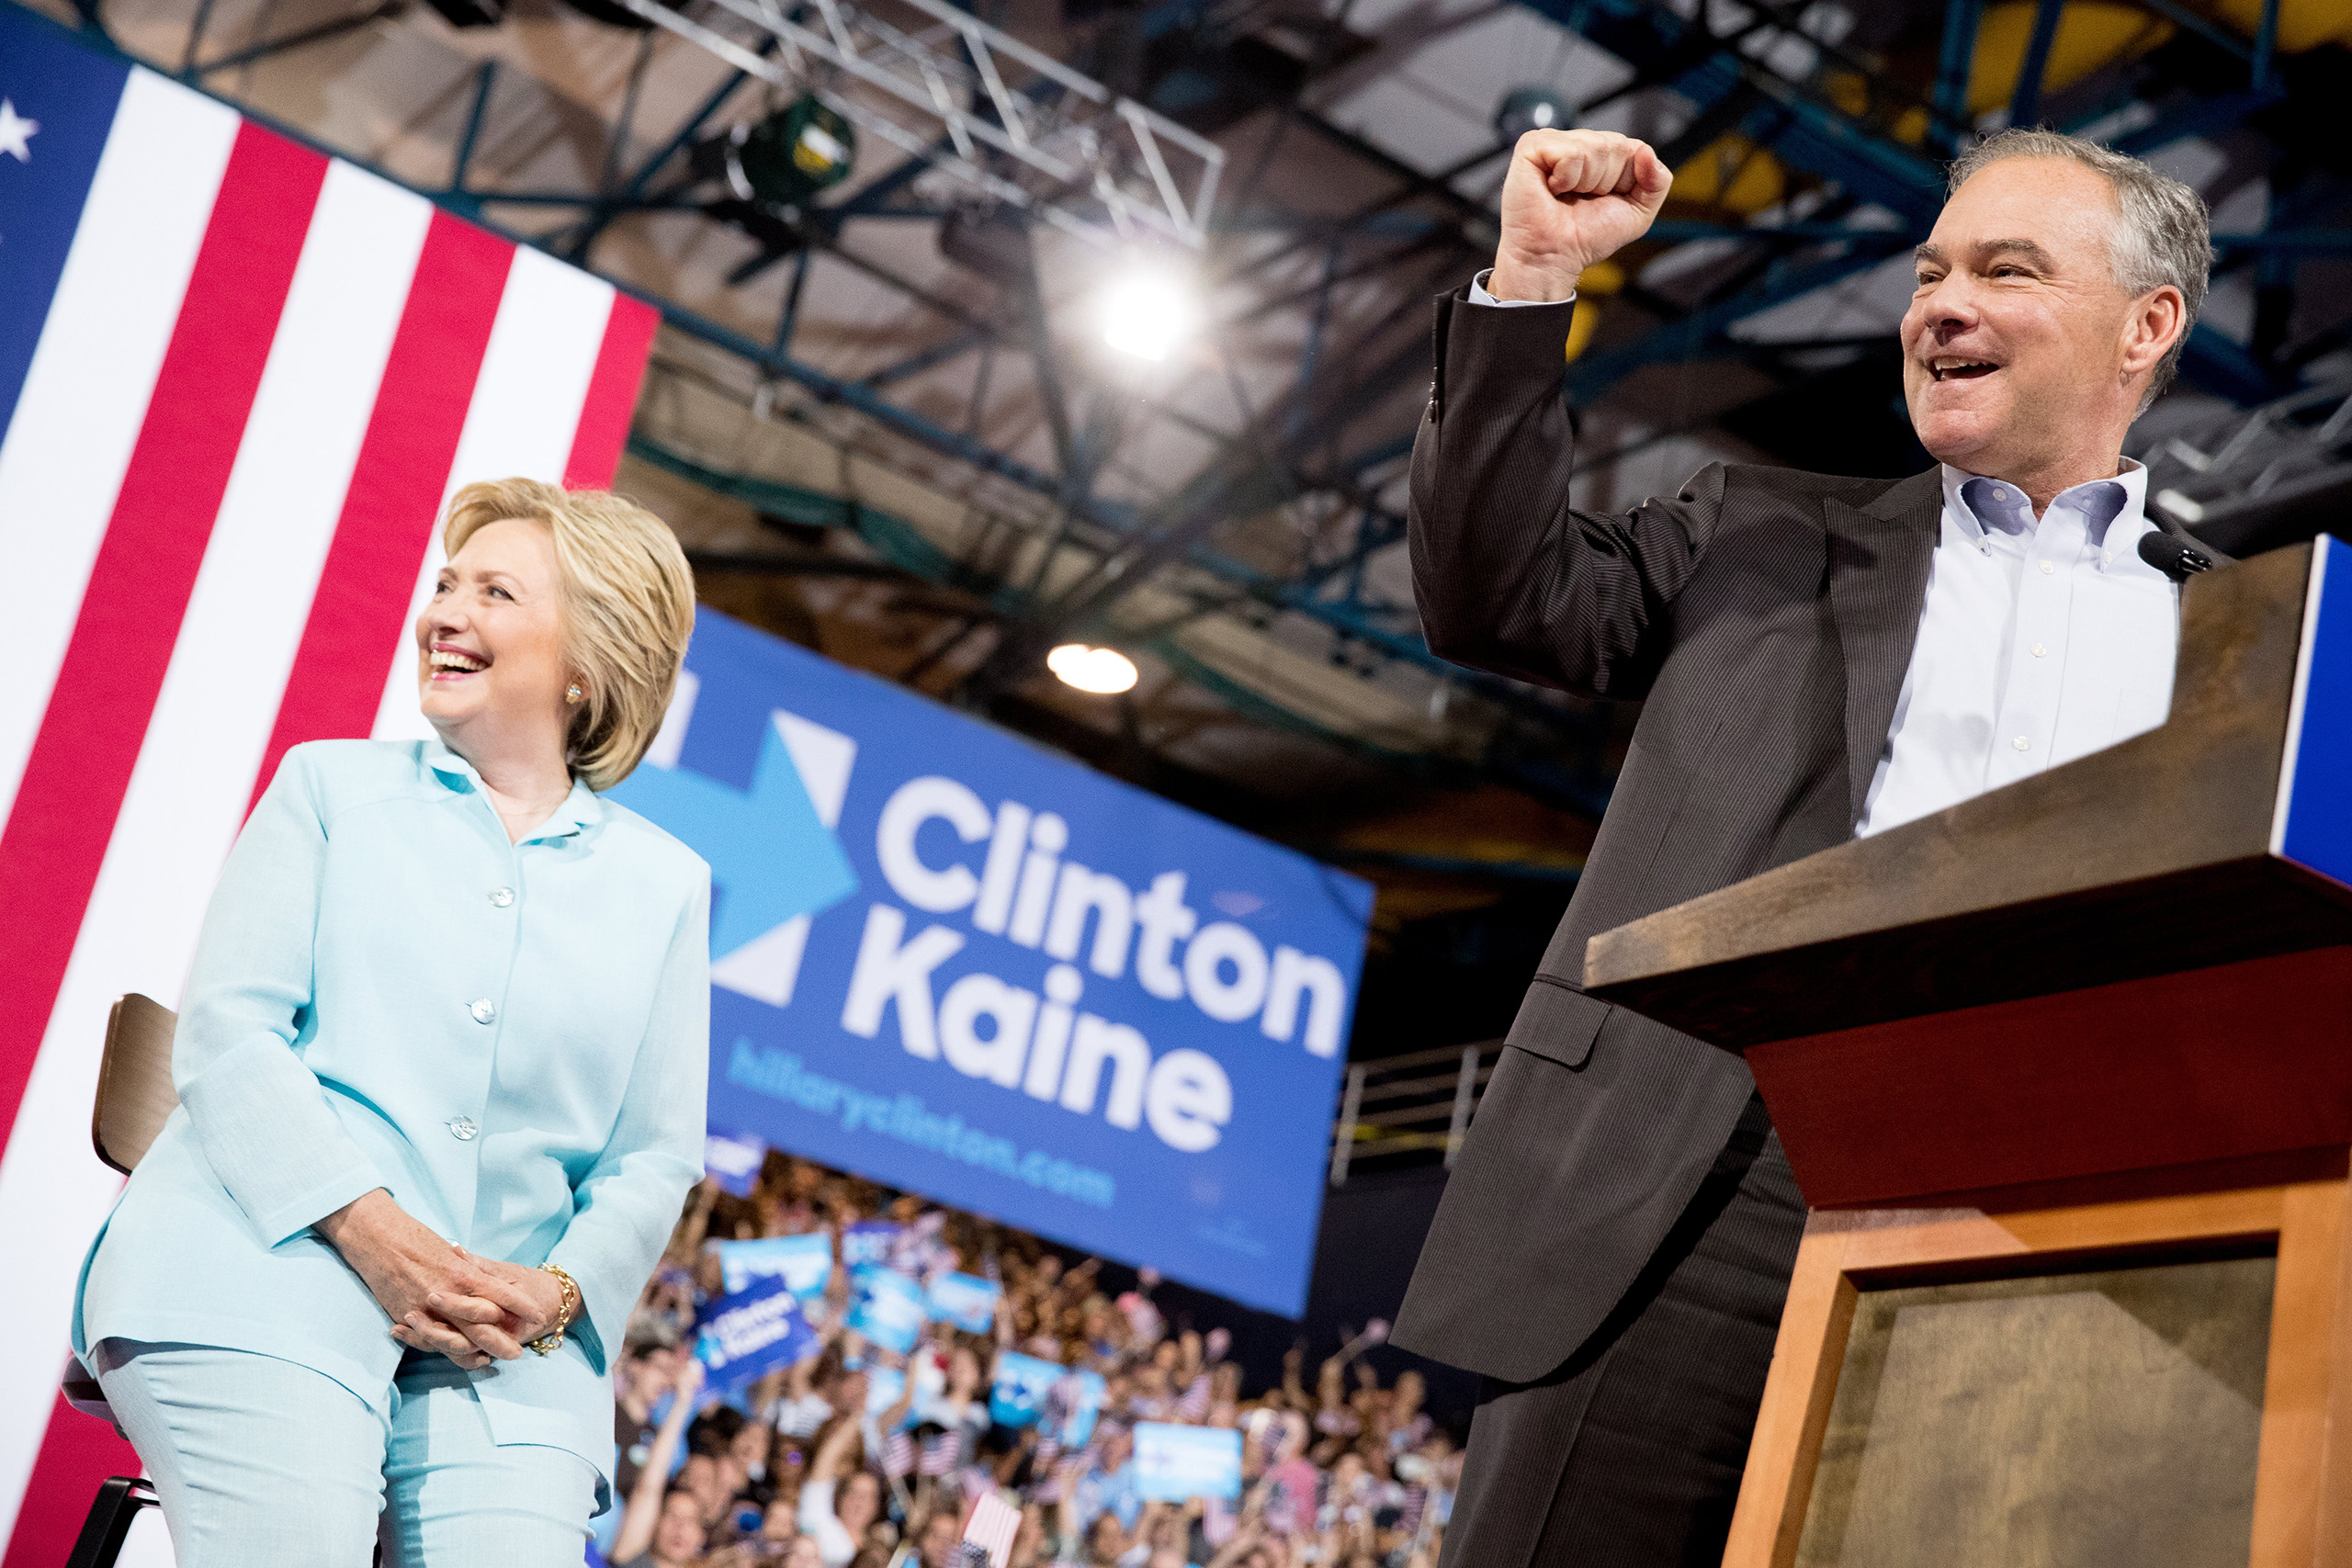 Sen. Tim Kaine, D-Va., right, accompanied by Democratic presidential candidate Hillary Clinton, left, speaks at a rally at Florida International University Panther Arena in Miami, Saturday, July 23, 2016. Clinton has chosen Kaine to be her running mate. (AP Photo/Andrew Harnik)